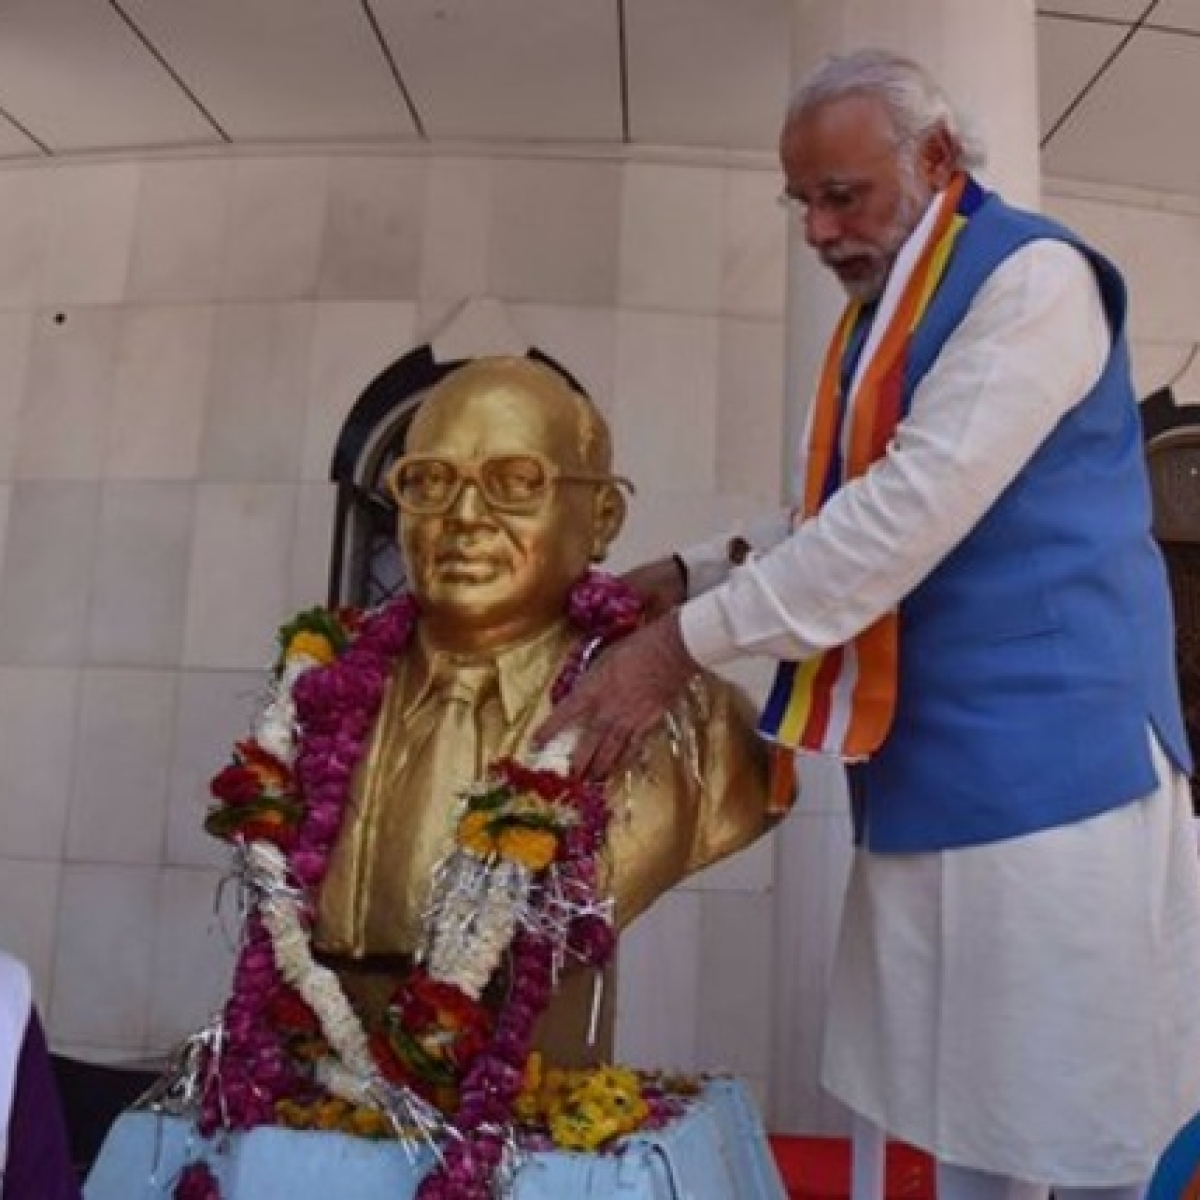 President Ram Nath Kovind, PM Modi and other leaders pay tributes to Babasaheb Ambedkar on his 129th birth anniversary